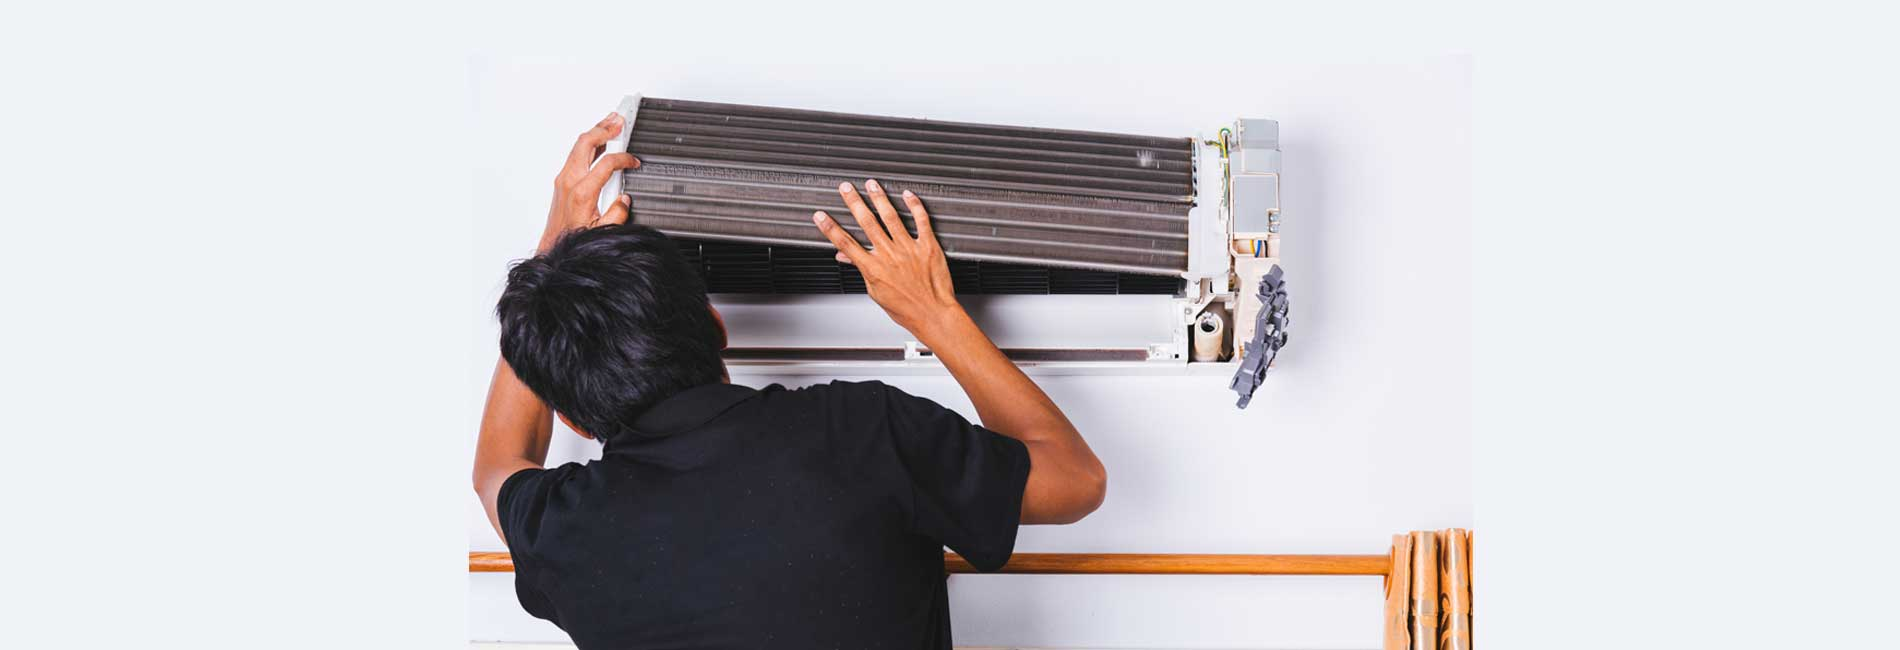 Air Condition Service in Kelambakkam